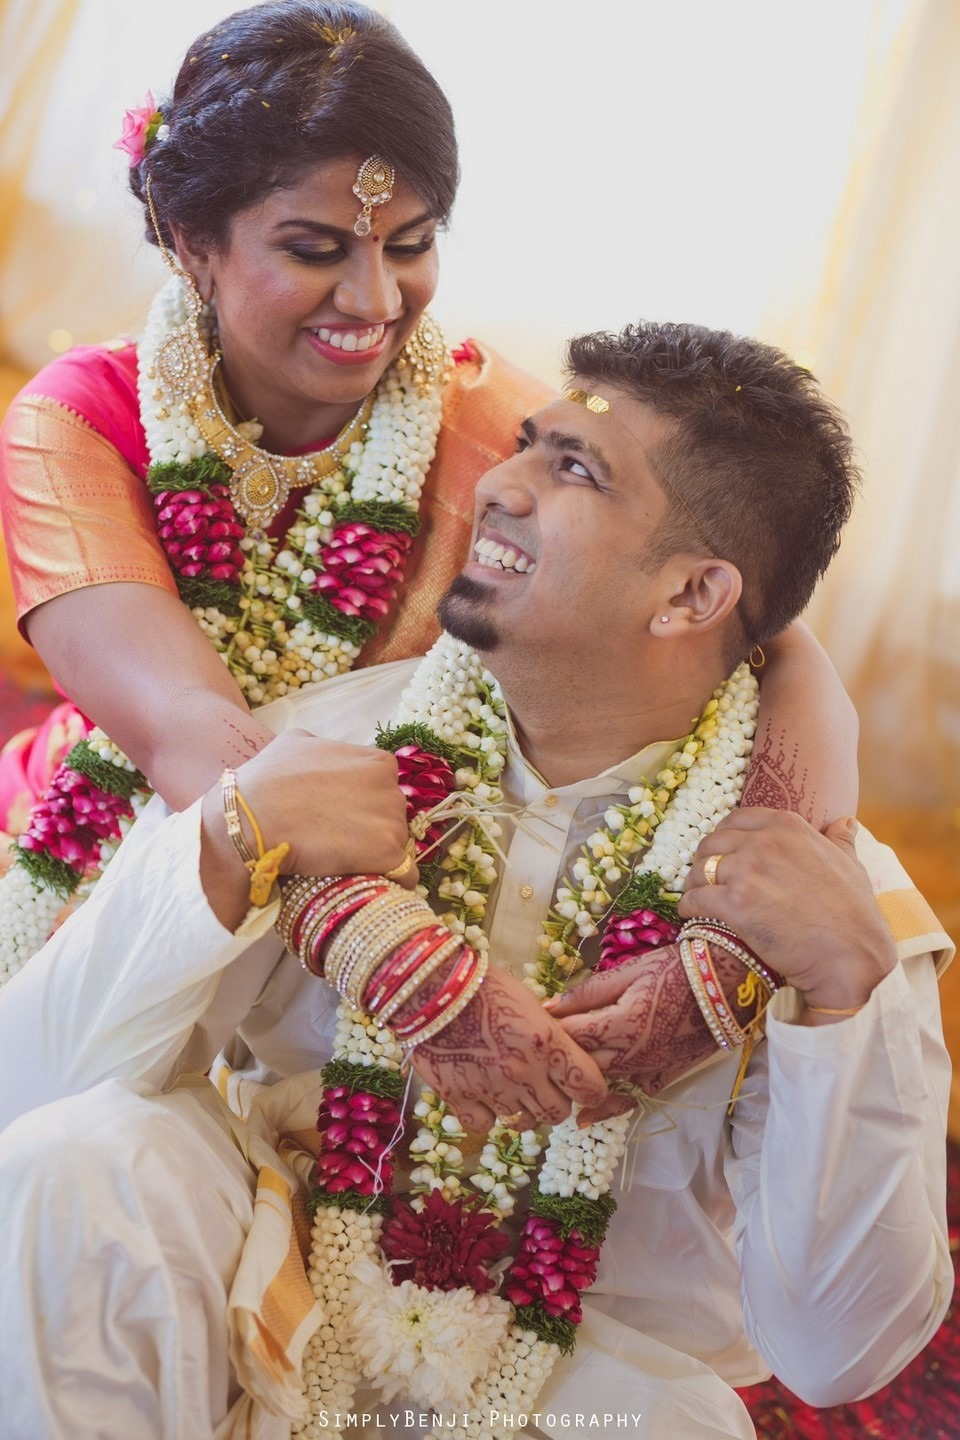 Tamil Hindu Wedding Ceremony at Railway Maha Ganapathy Temple and Reception at Adonis Bridal Ipoh_KL Photographer_234